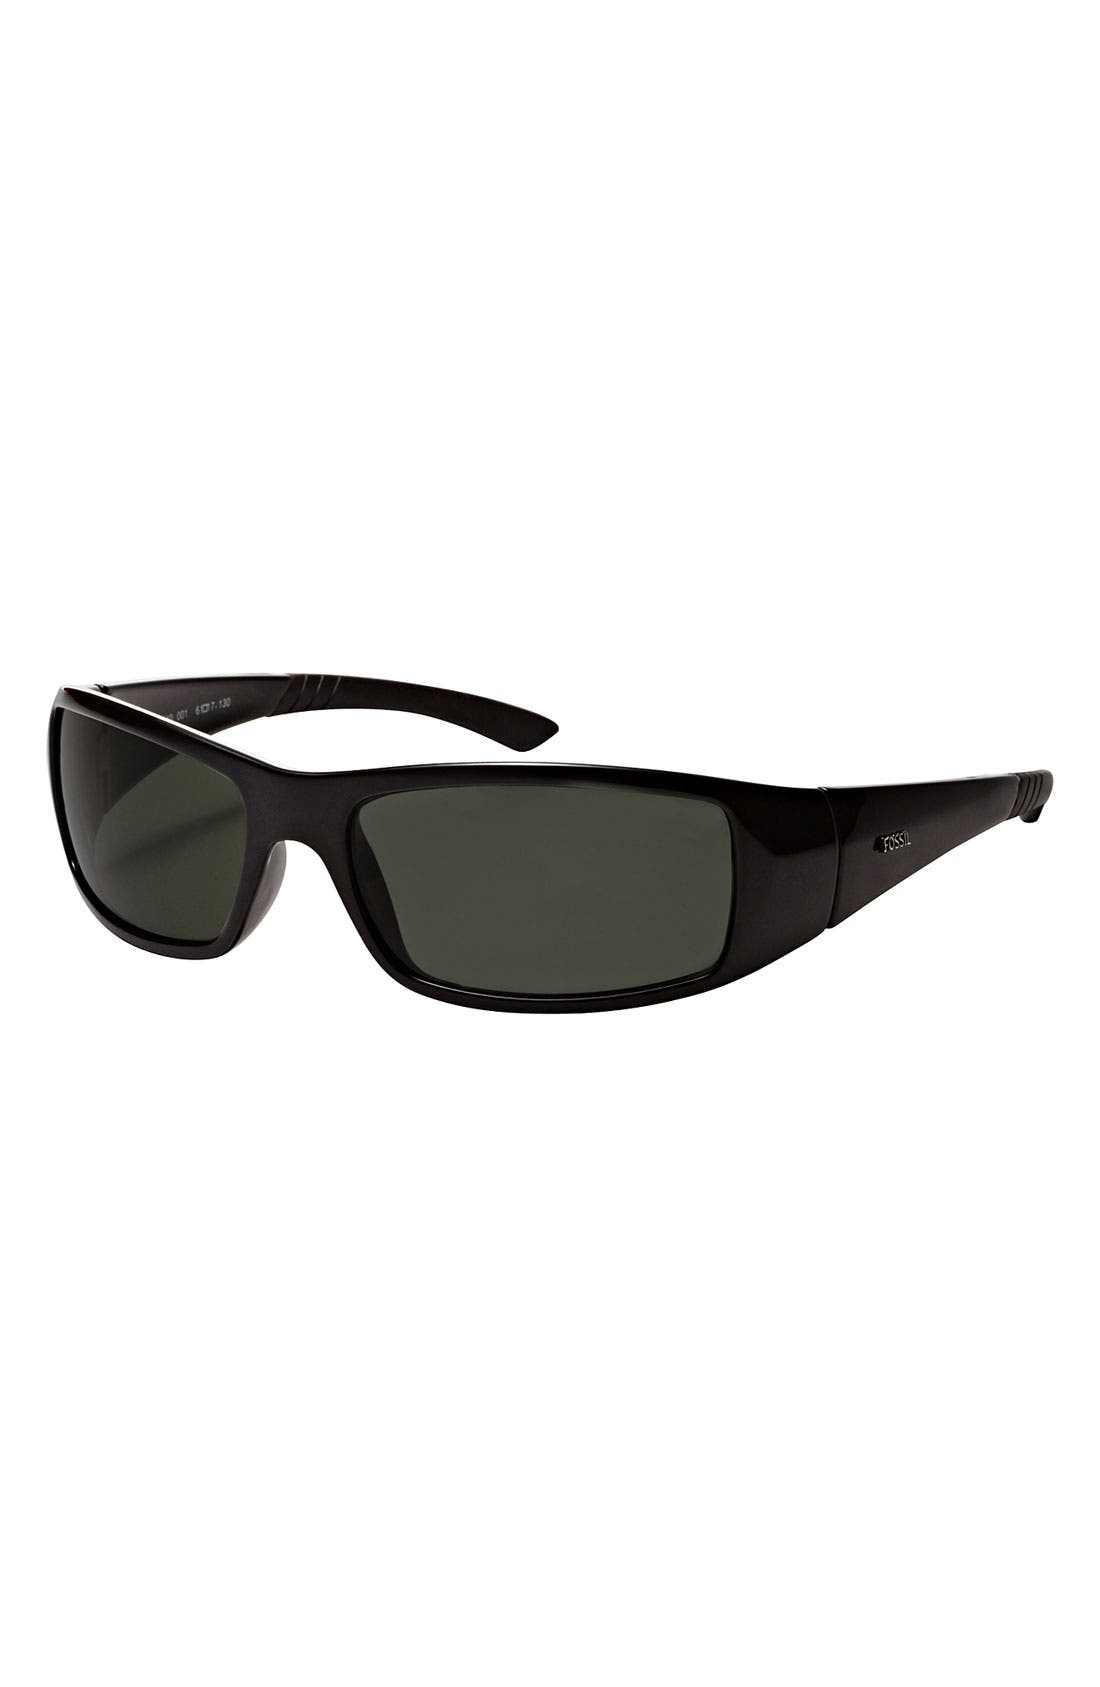 Alternate Image 1 Selected - Fossil 'Patrick' Sunglasses